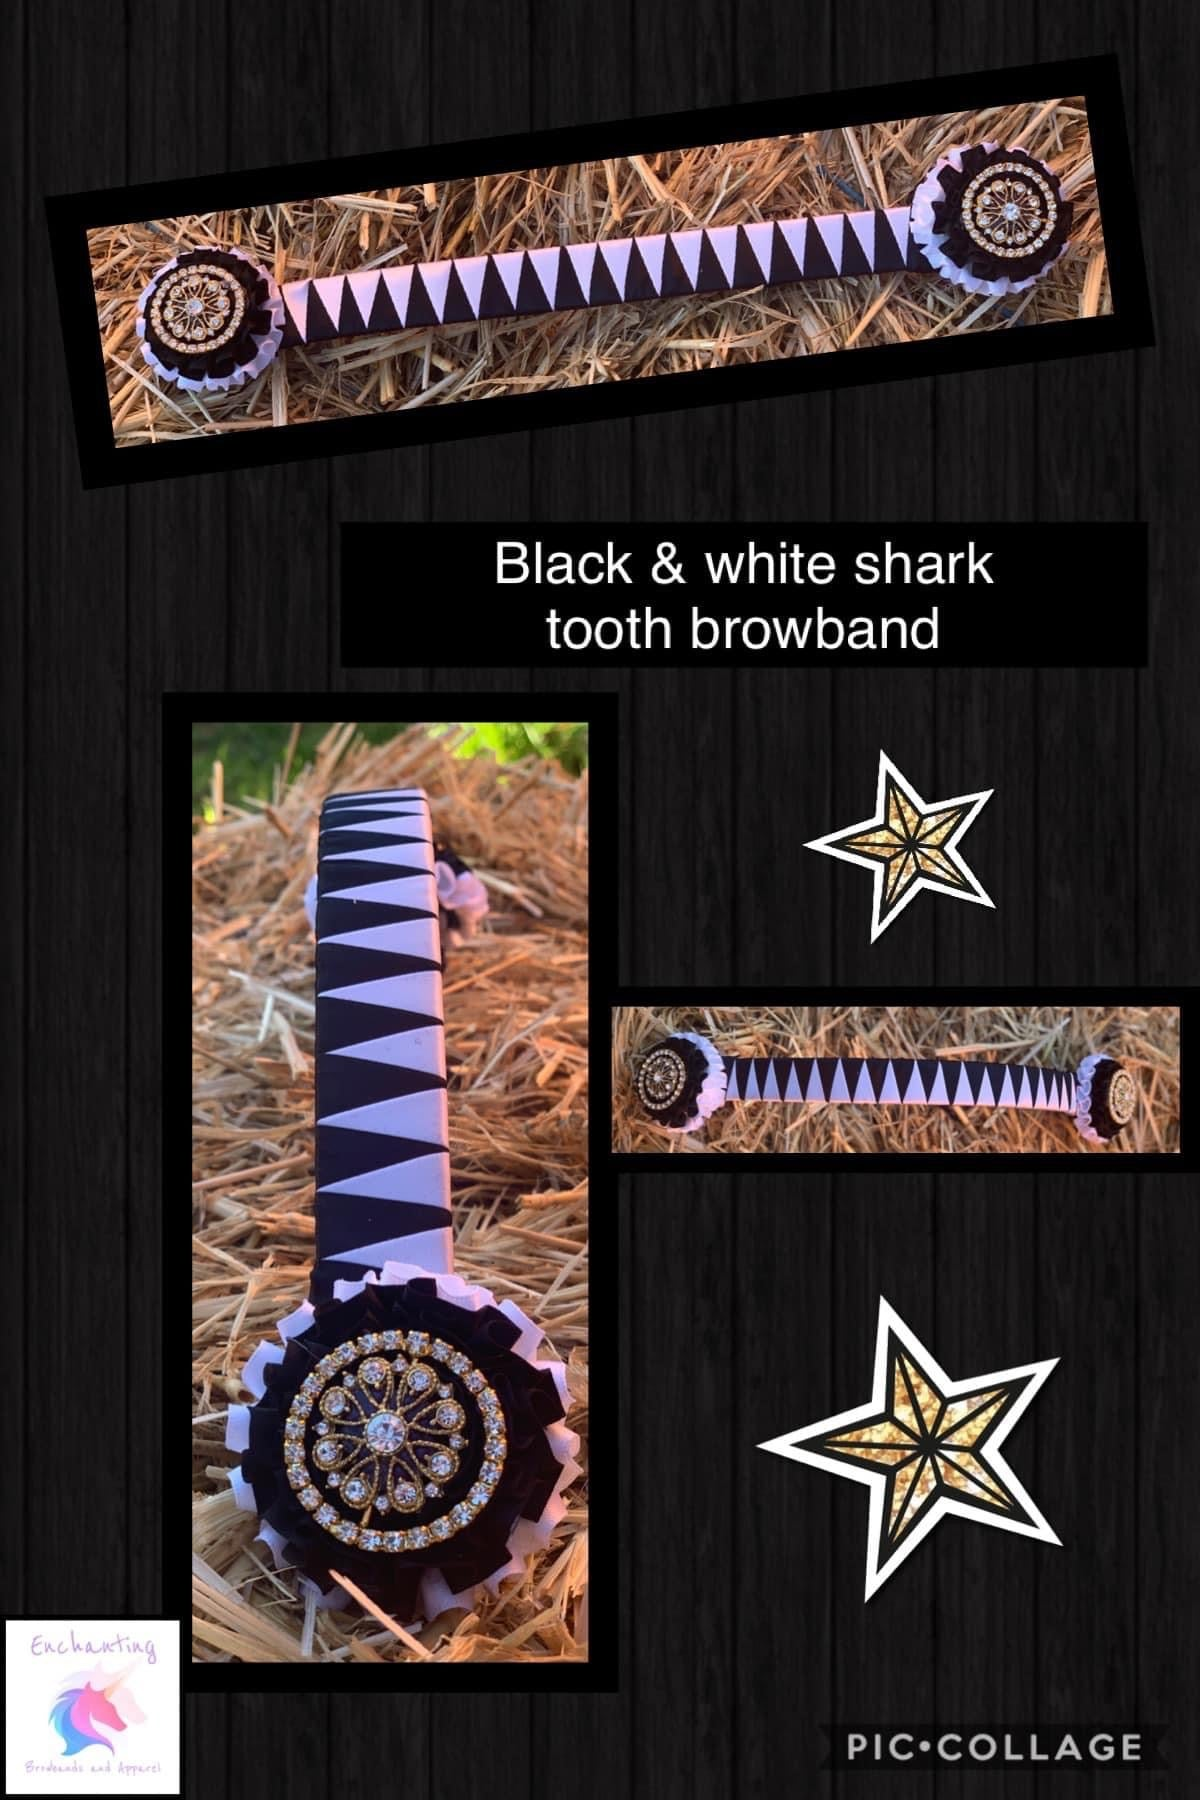 Black & white sharktooth browband